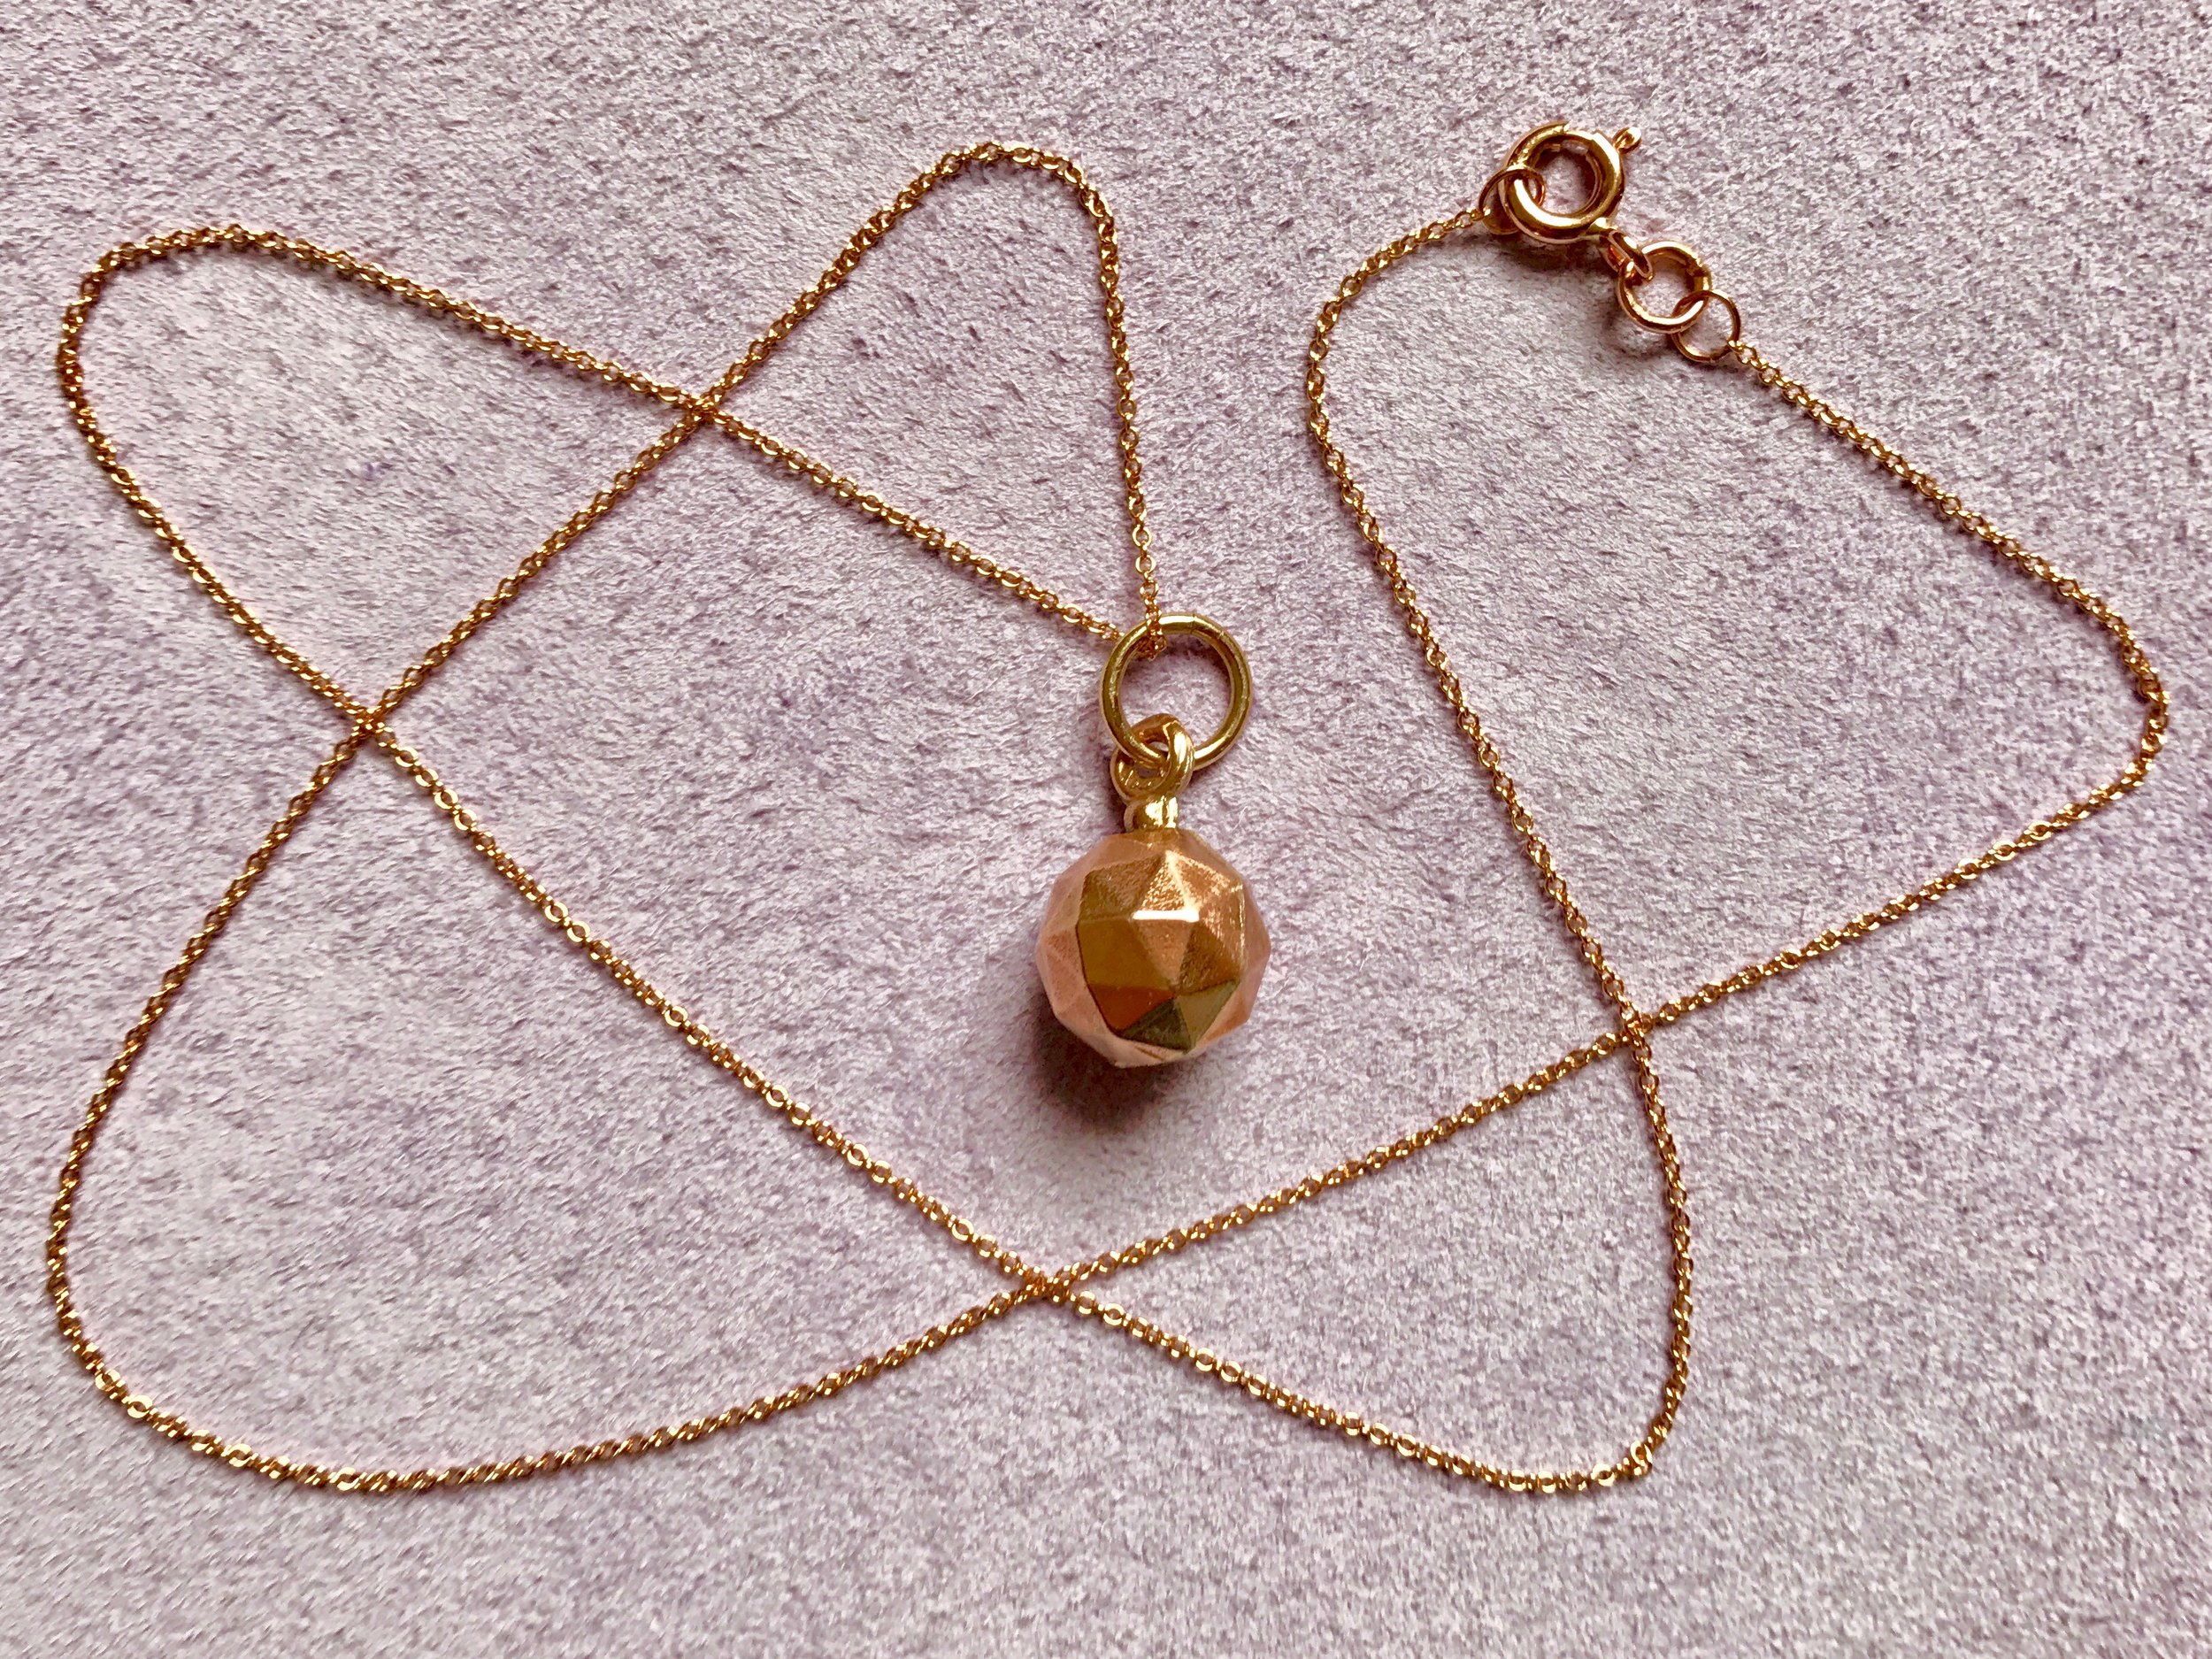 SPHERE PENDANT NECKLACE